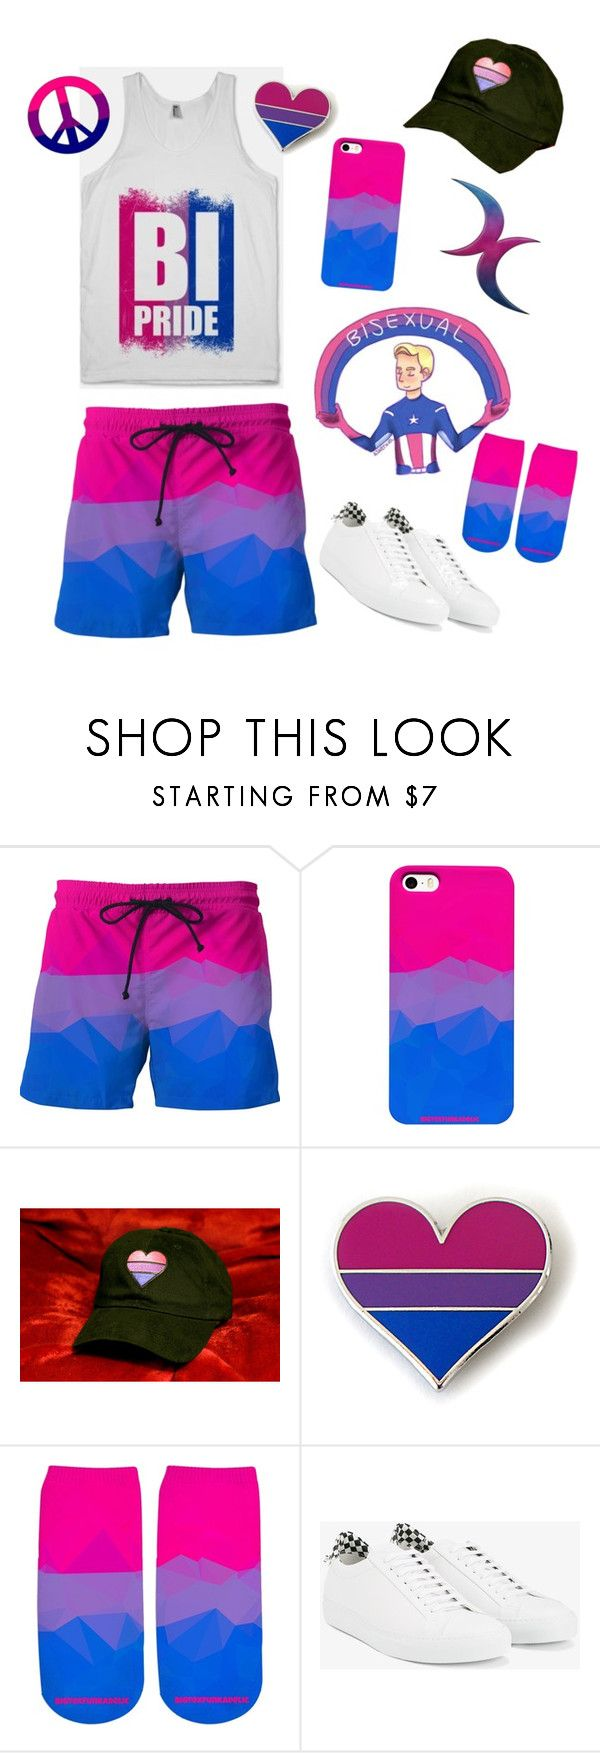 """""""Bisexual Pride 2017"""" by bigtexfunkadelic ❤ liked on Polyvore featuring Givenchy, pride, lgbt, bisexual, bi and BigTexFunkadelic"""